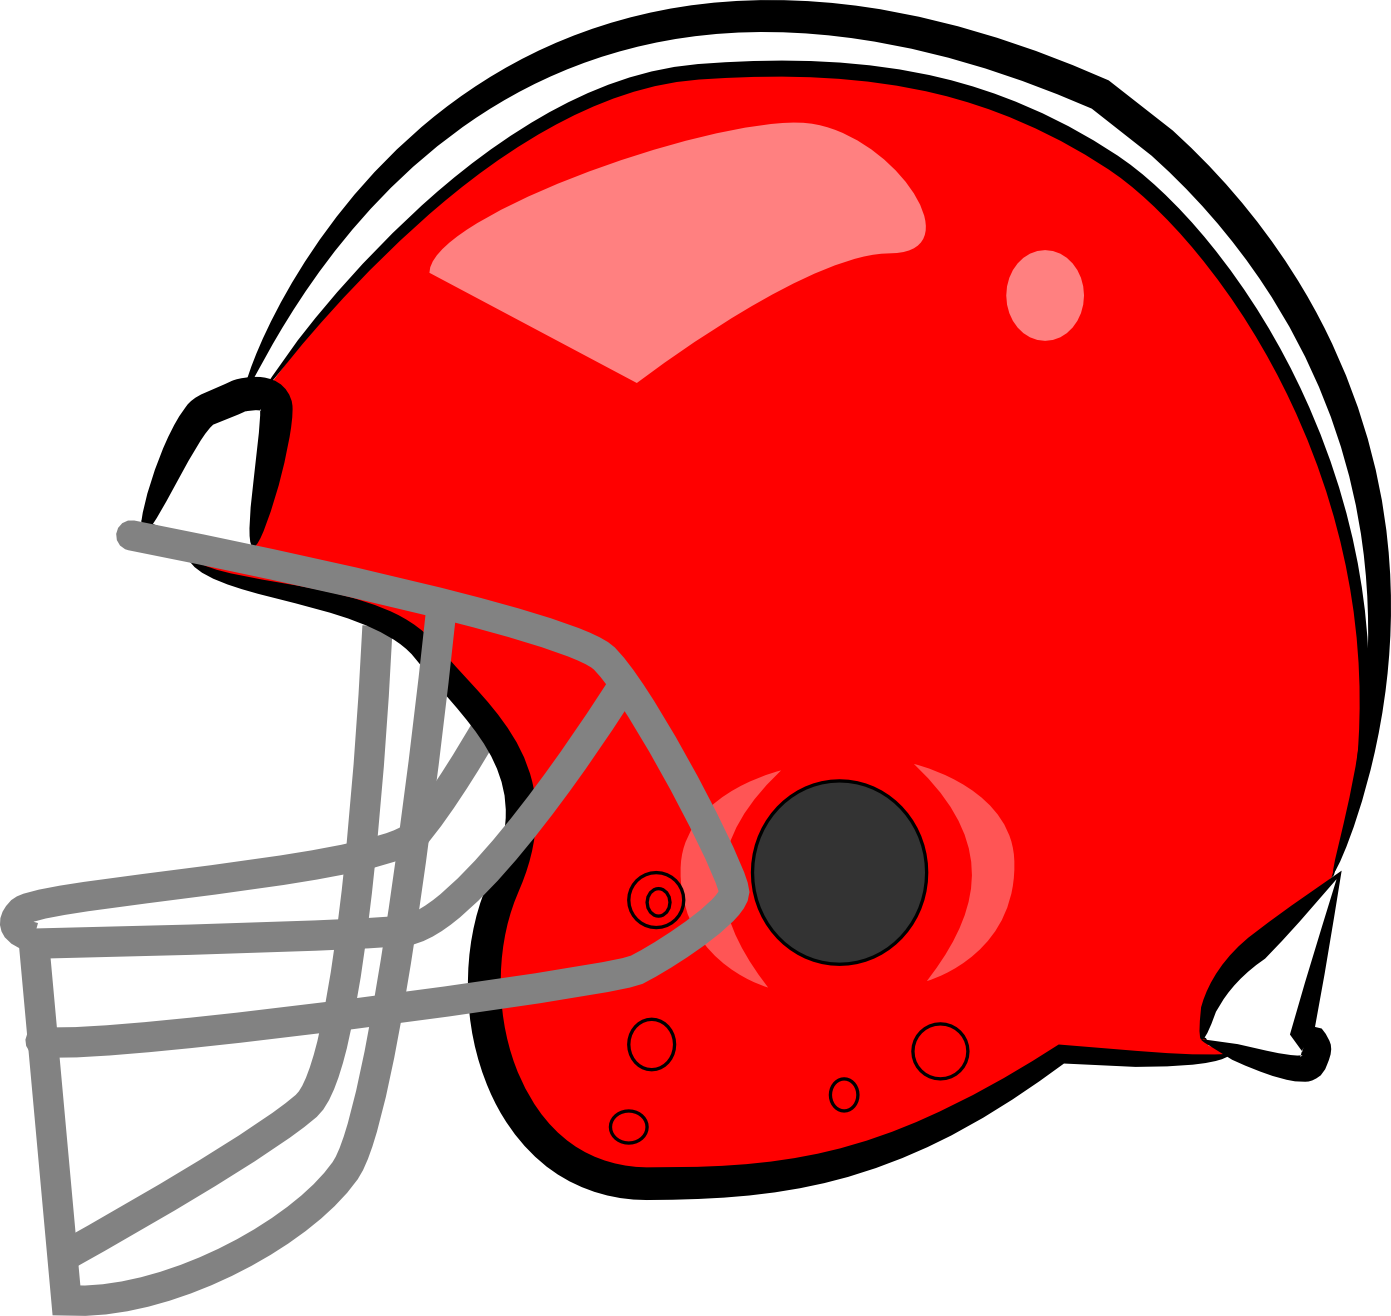 Pink football helmet clipart picture freeuse download Alabama Football Clipart at GetDrawings.com | Free for personal use ... picture freeuse download